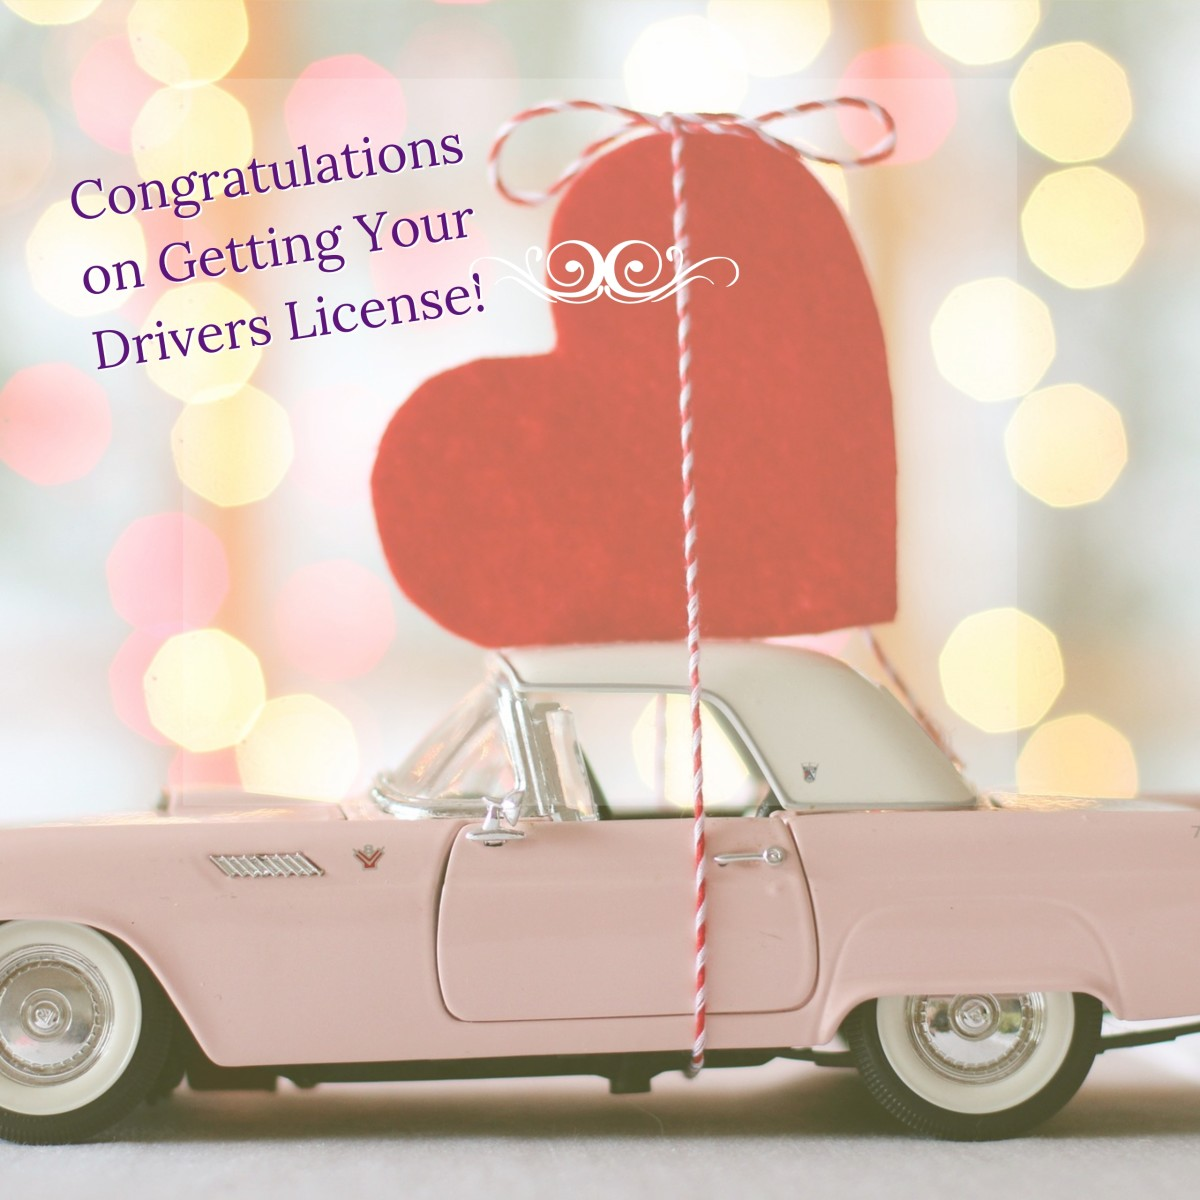 Congratulations on Getting Your Drivers License - Nice things you Can Write in a Card for the New Driver